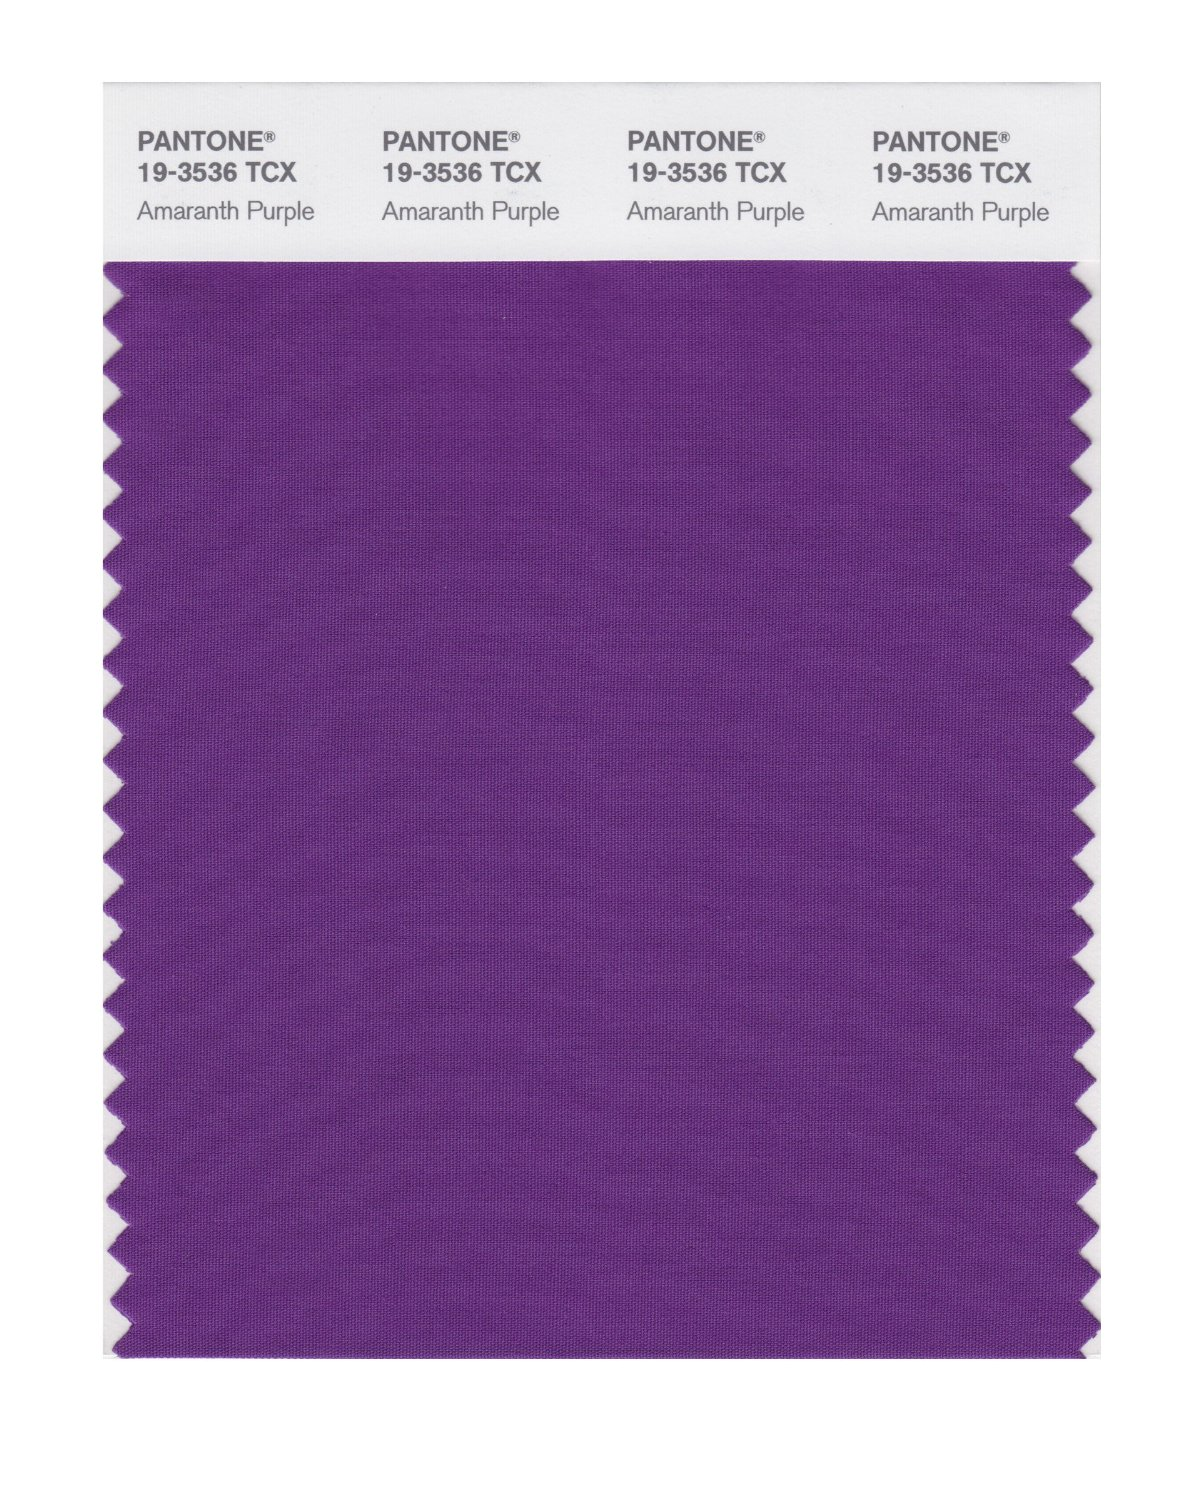 Pantone Smart Swatch 19-3536 Amaranth Purple